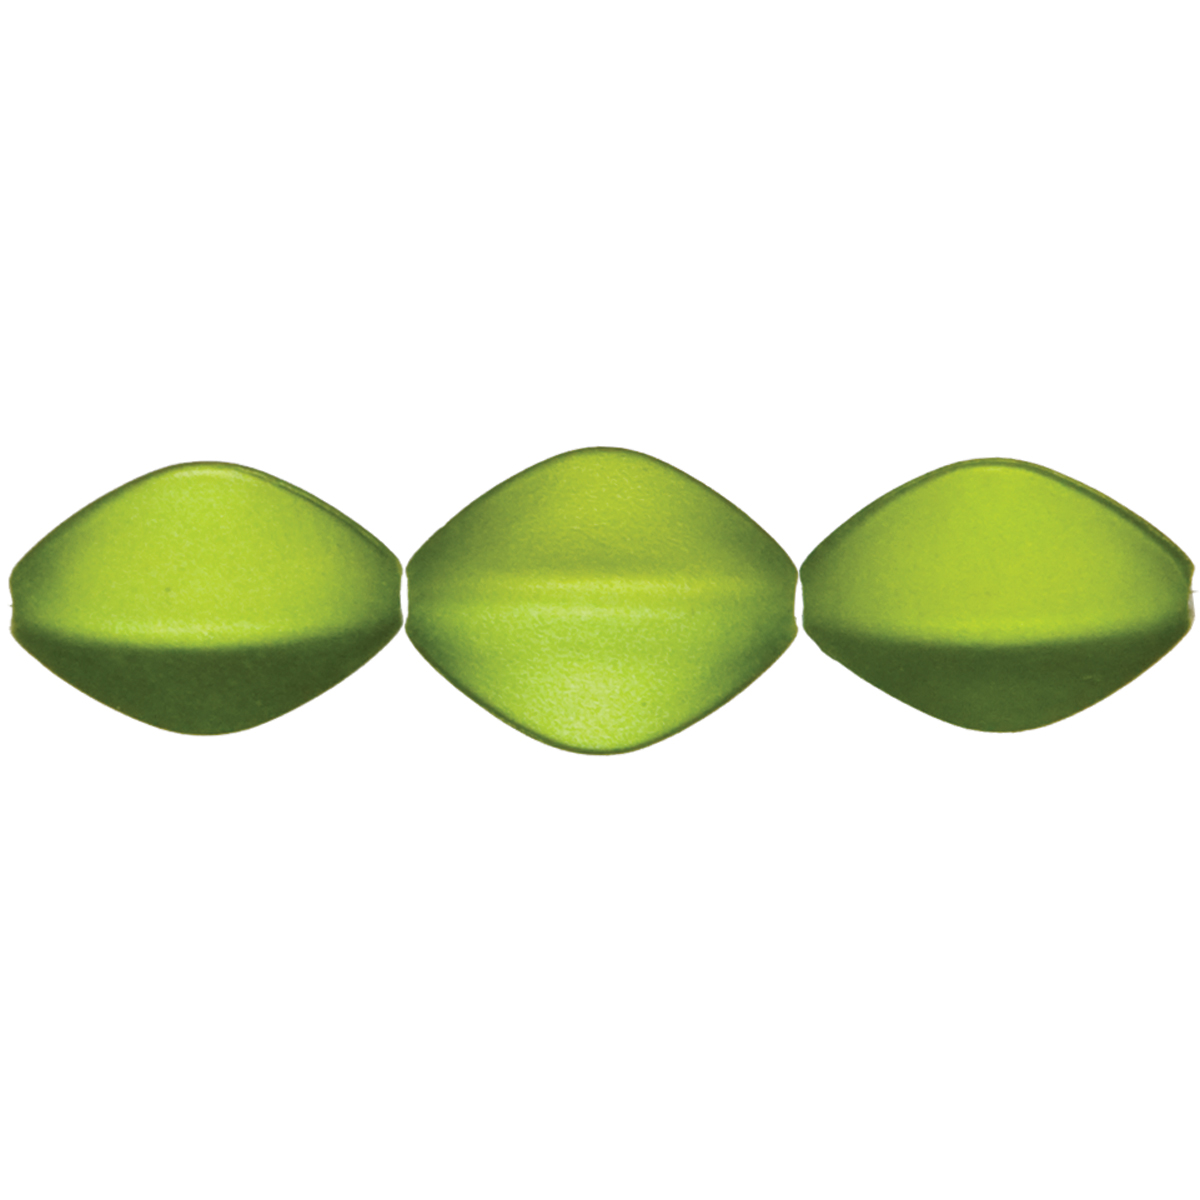 Jewelry Basics Acrylic Beads-Lime Oval 40/Pkg